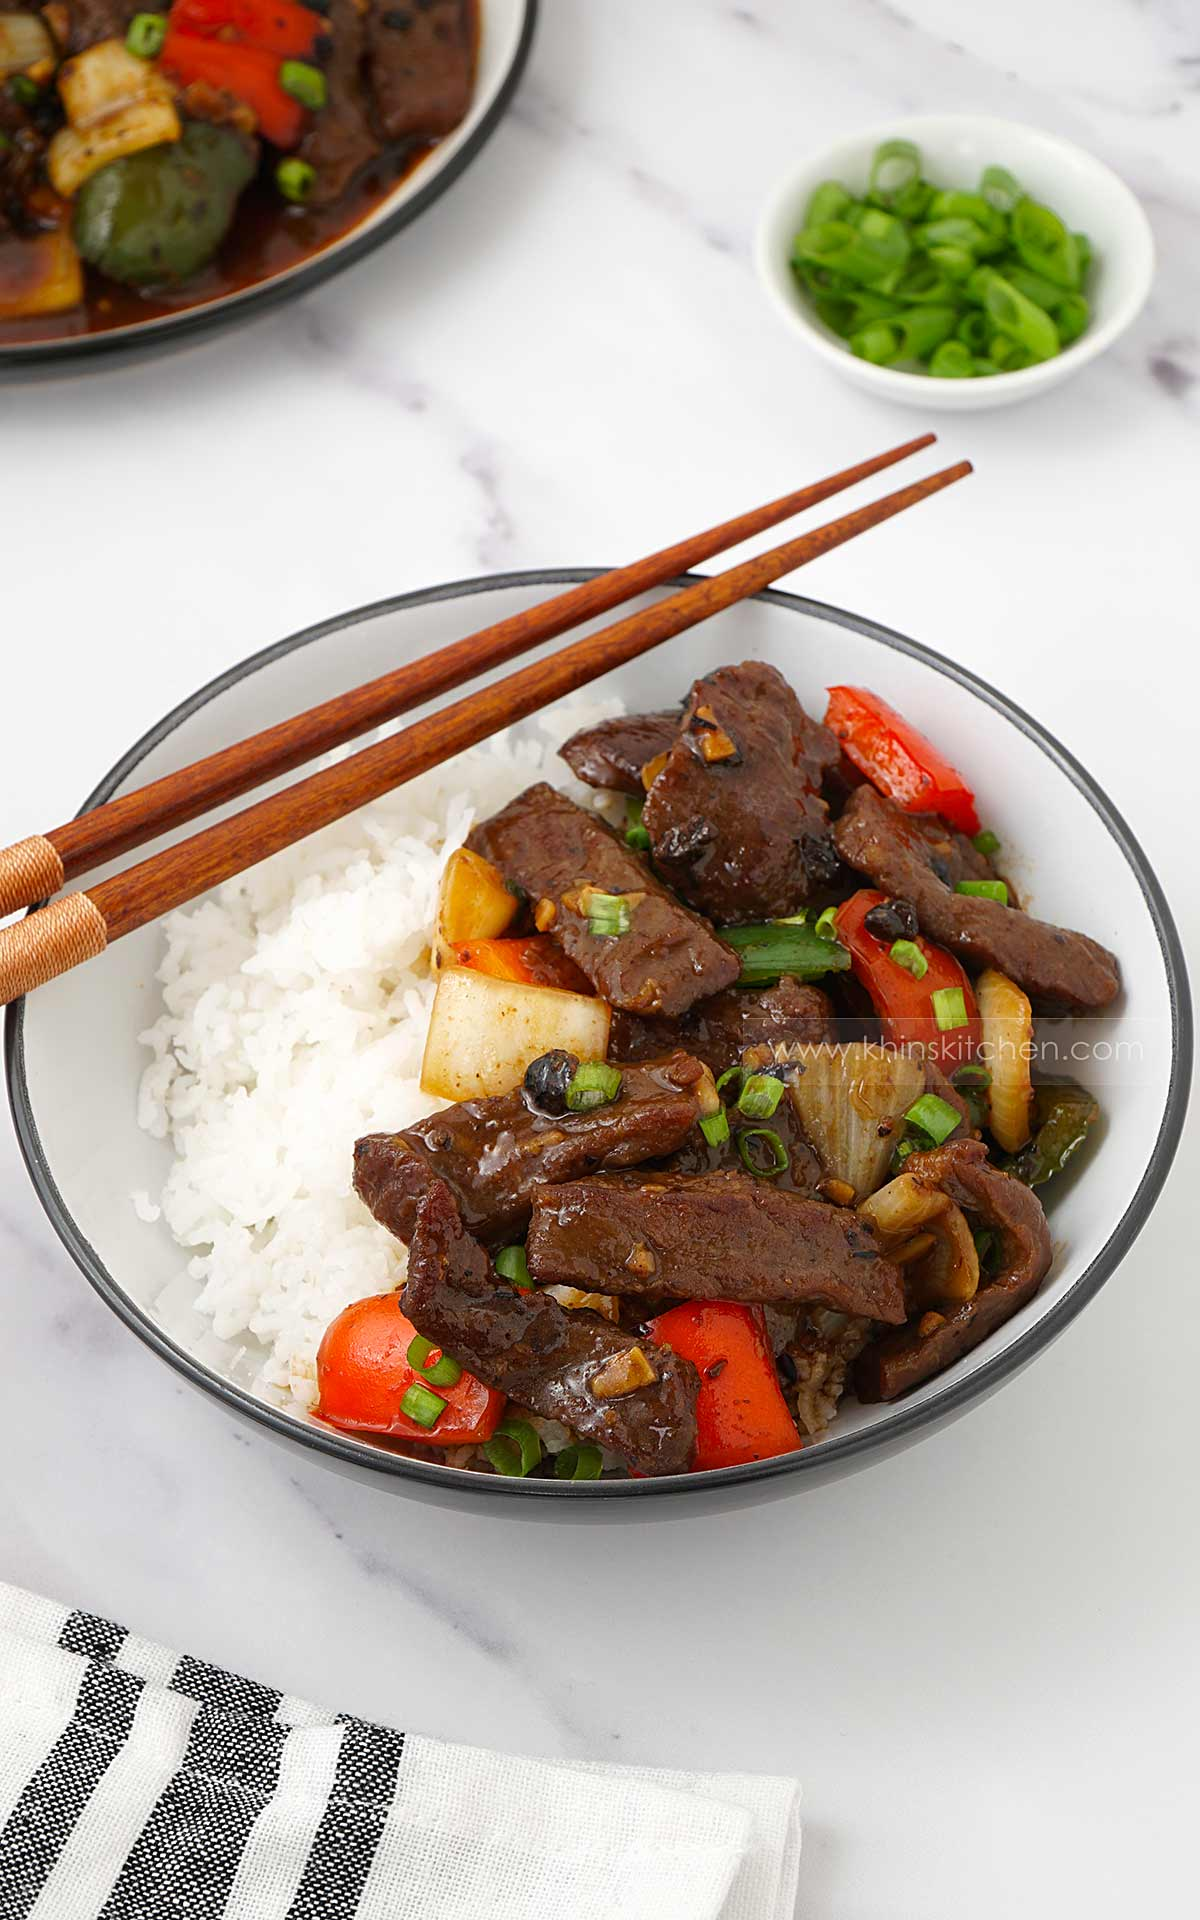 A white bowl containing rice, topped with beef, red peppers, onions and black beans.